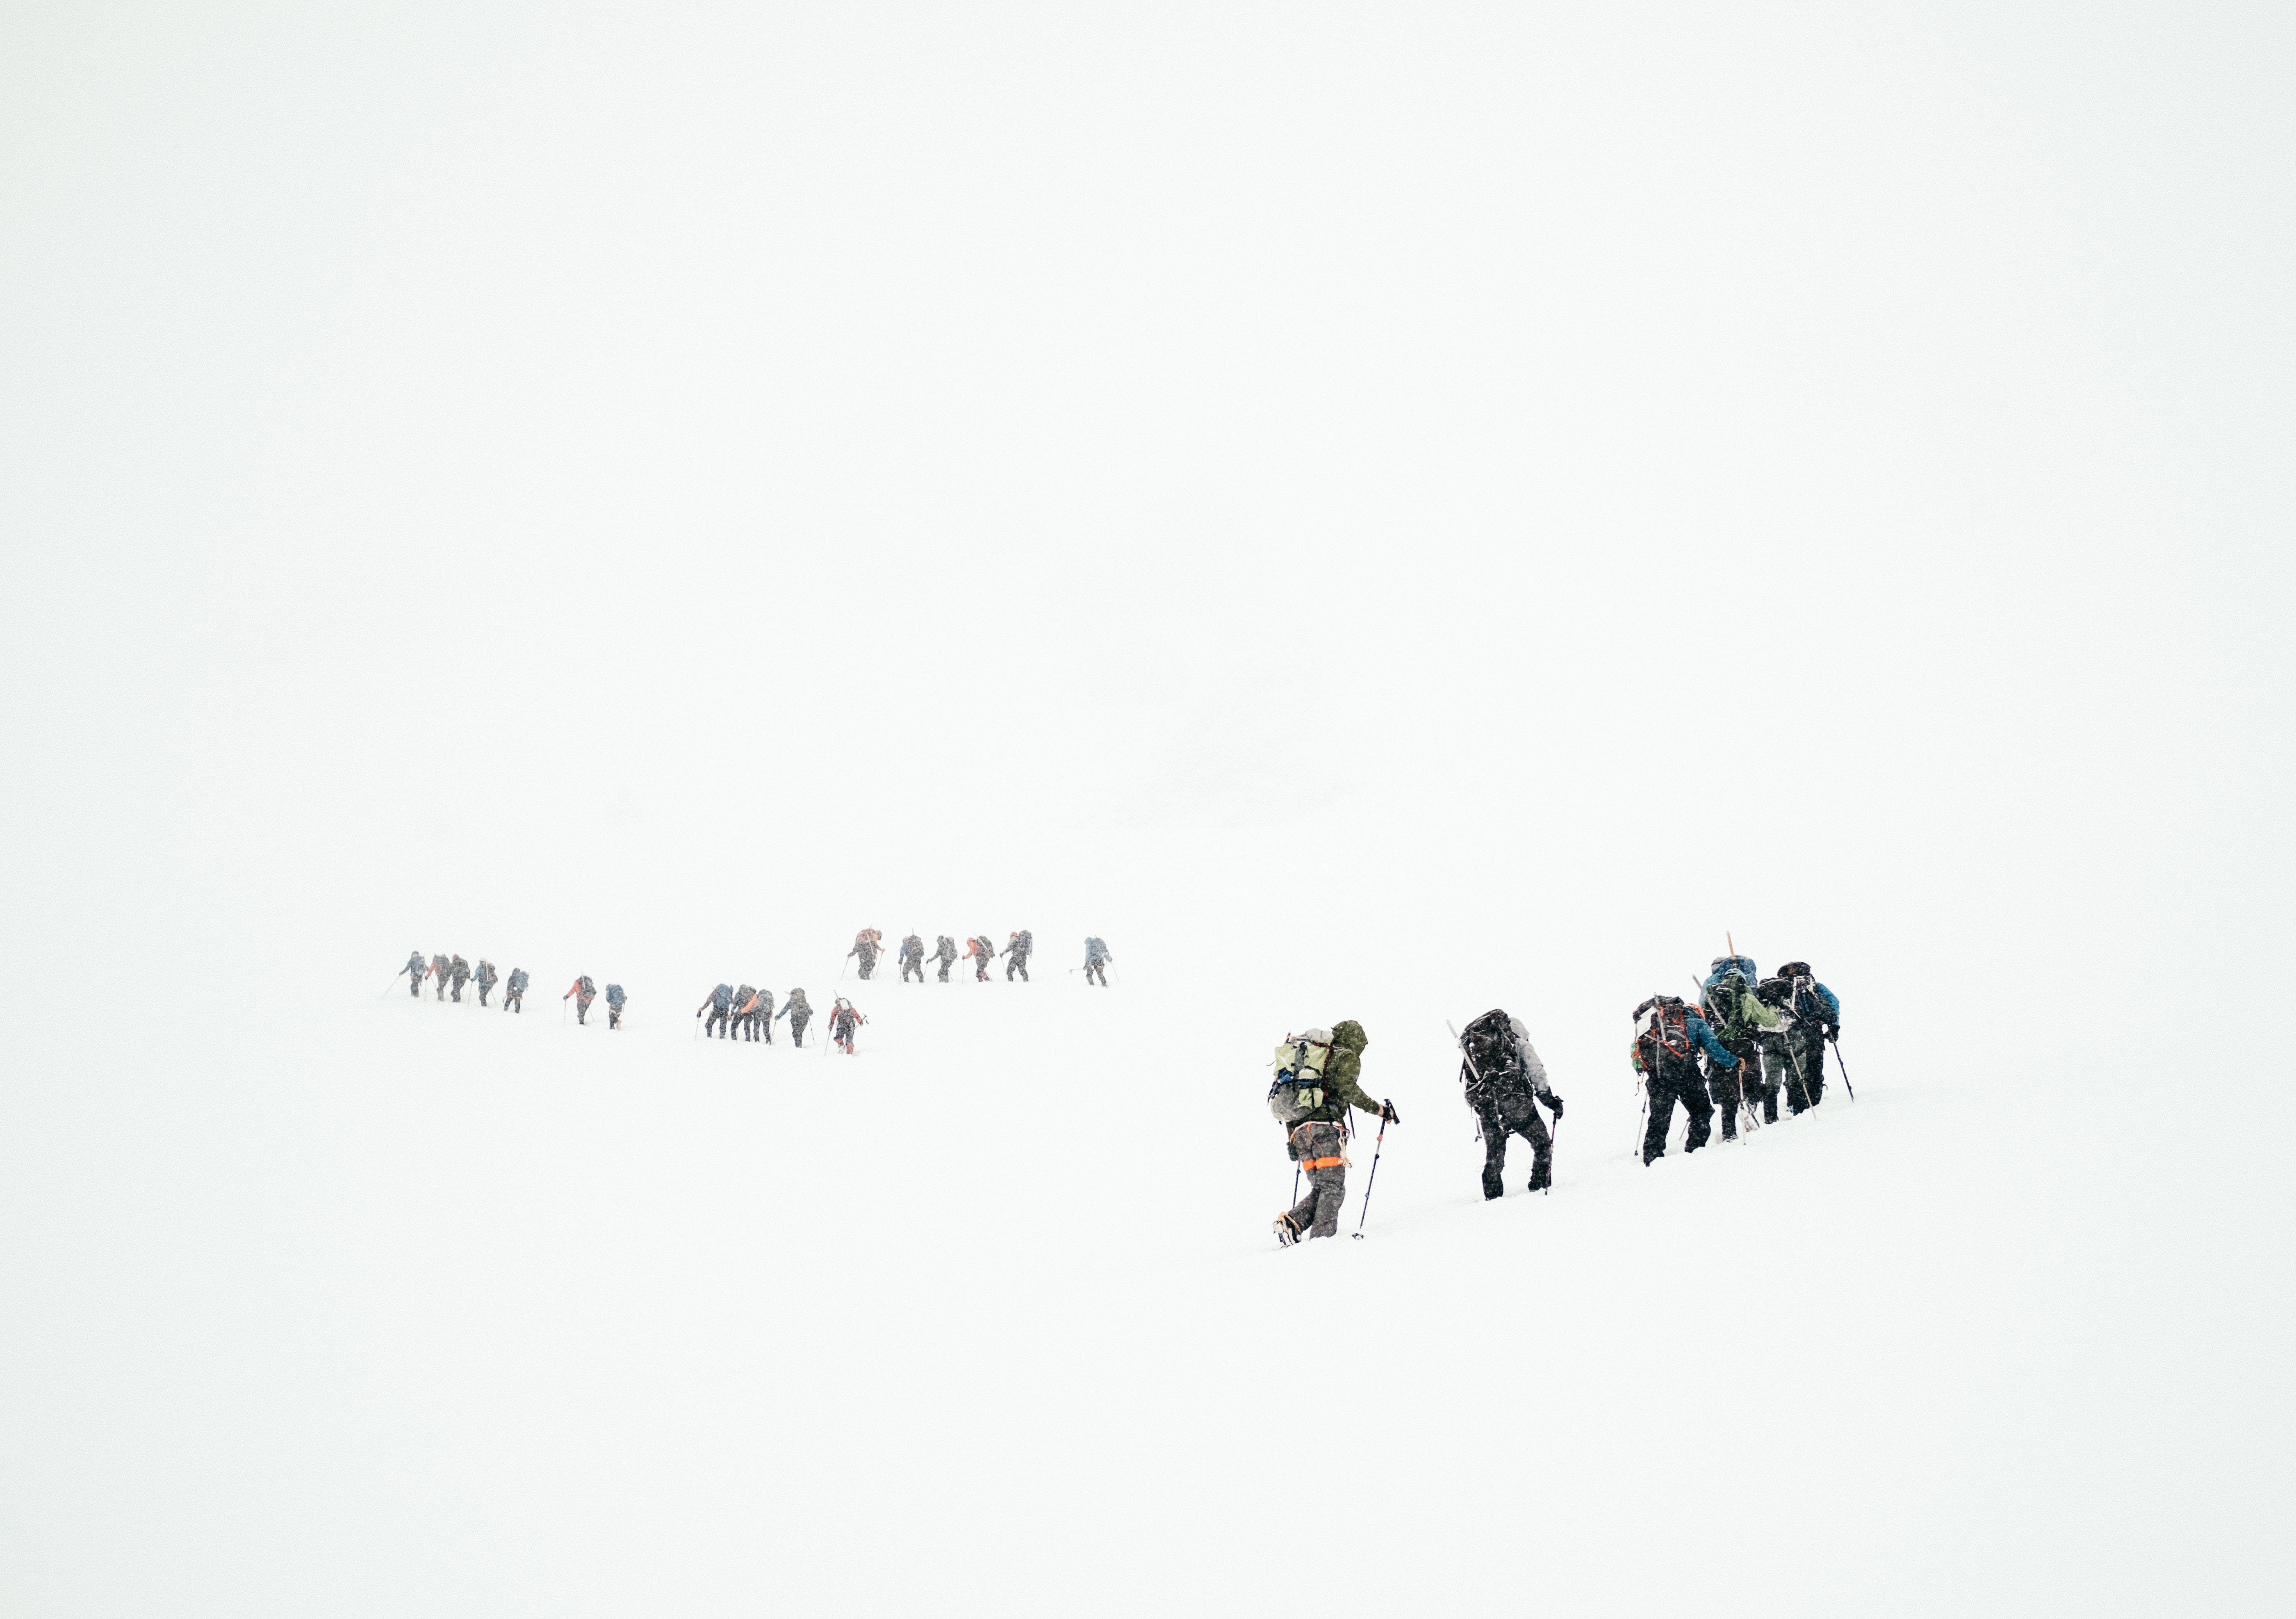 Small groups of mountaineers with heavy backpacks in a snowy wasteland